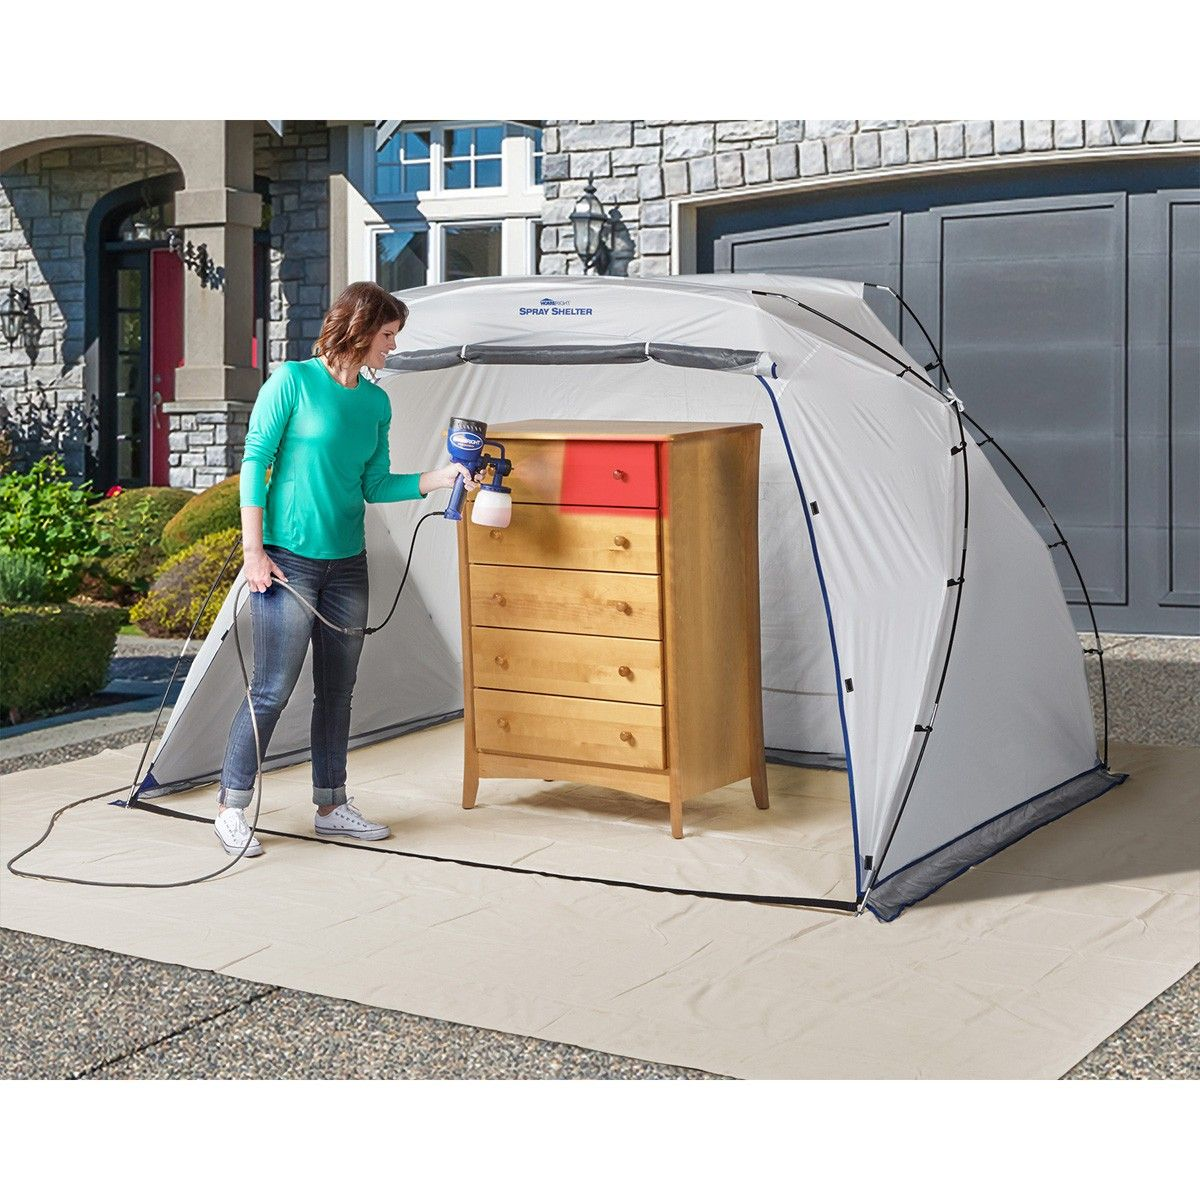 Large Spray Paint Shelter Spray Paint Furniture Diy Tent